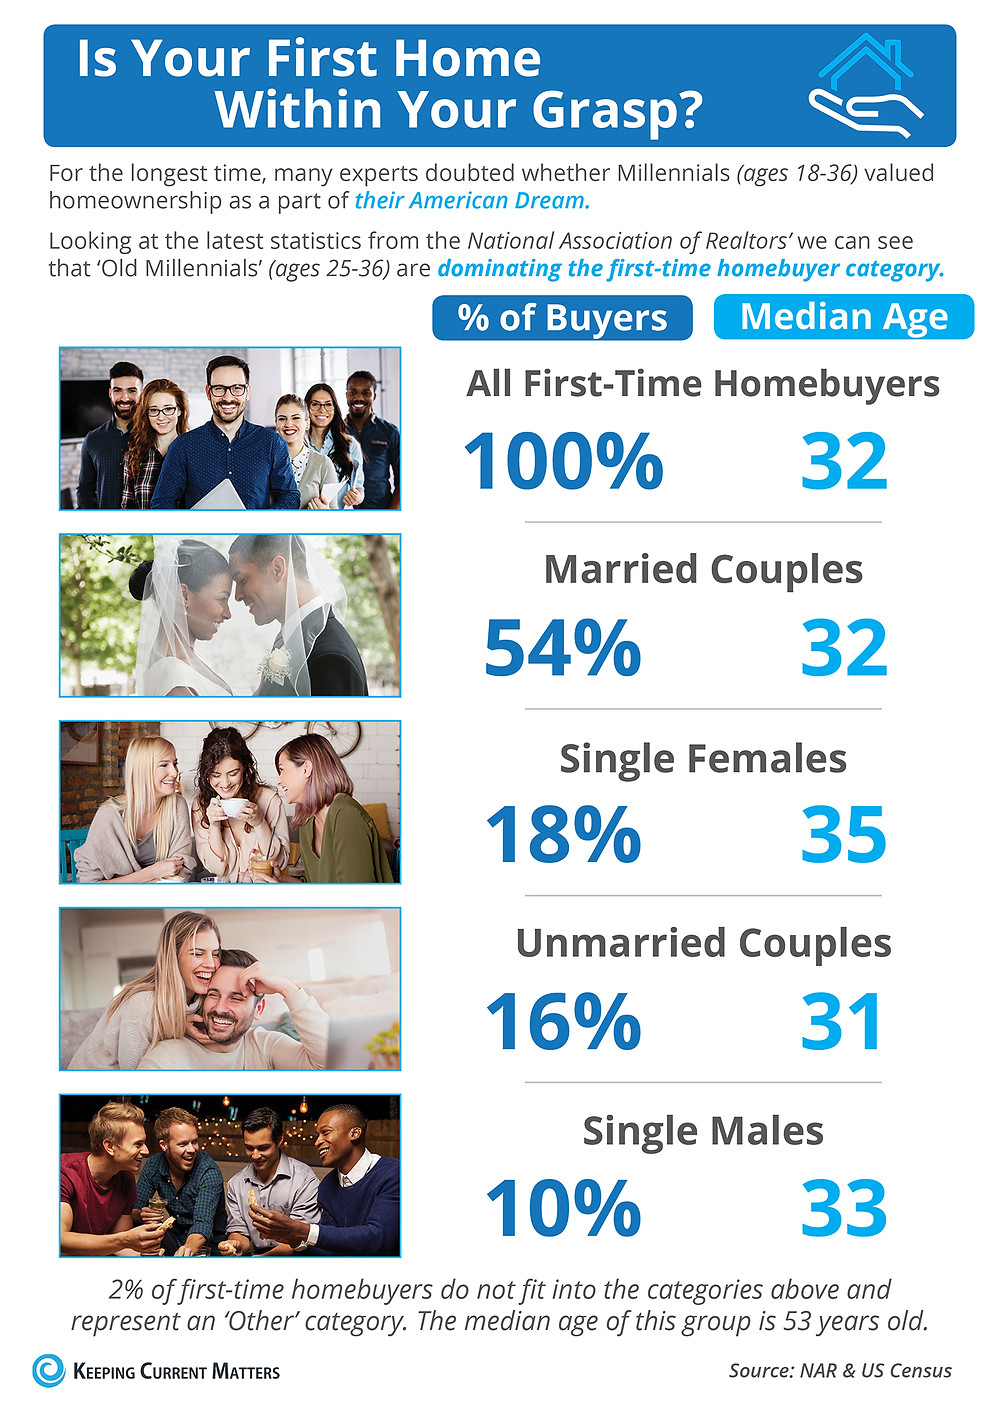 Is Your First Home Now Within Your Grasp? [INFOGRAPHIC] | Keeping Current Matters